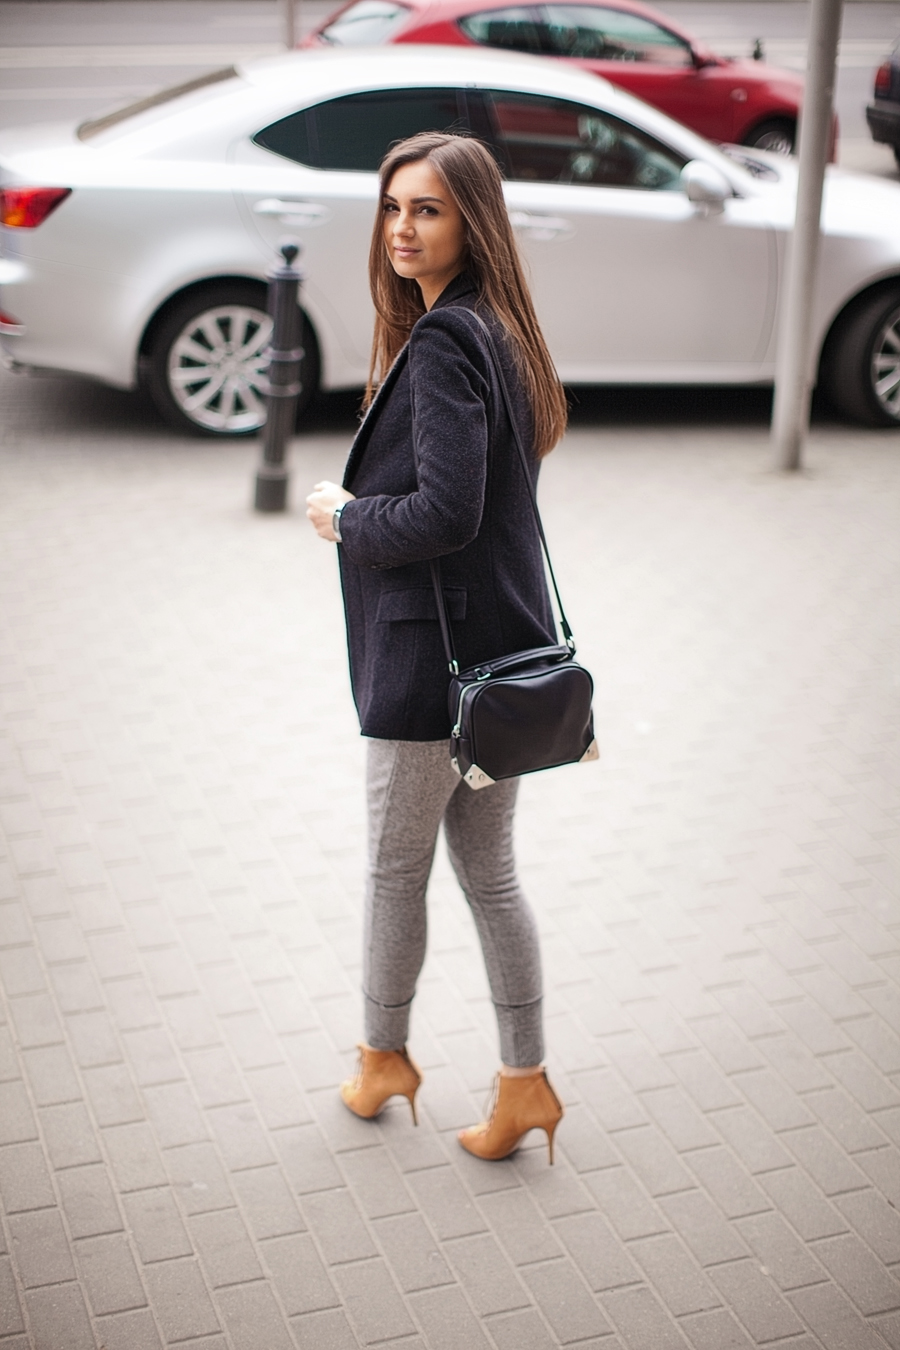 drop_crotch_personal_style_fashion_blog_Ukraine_zara_outfit_lace_up_peep_toe_boots_blazer_cool_elegant_outfit3